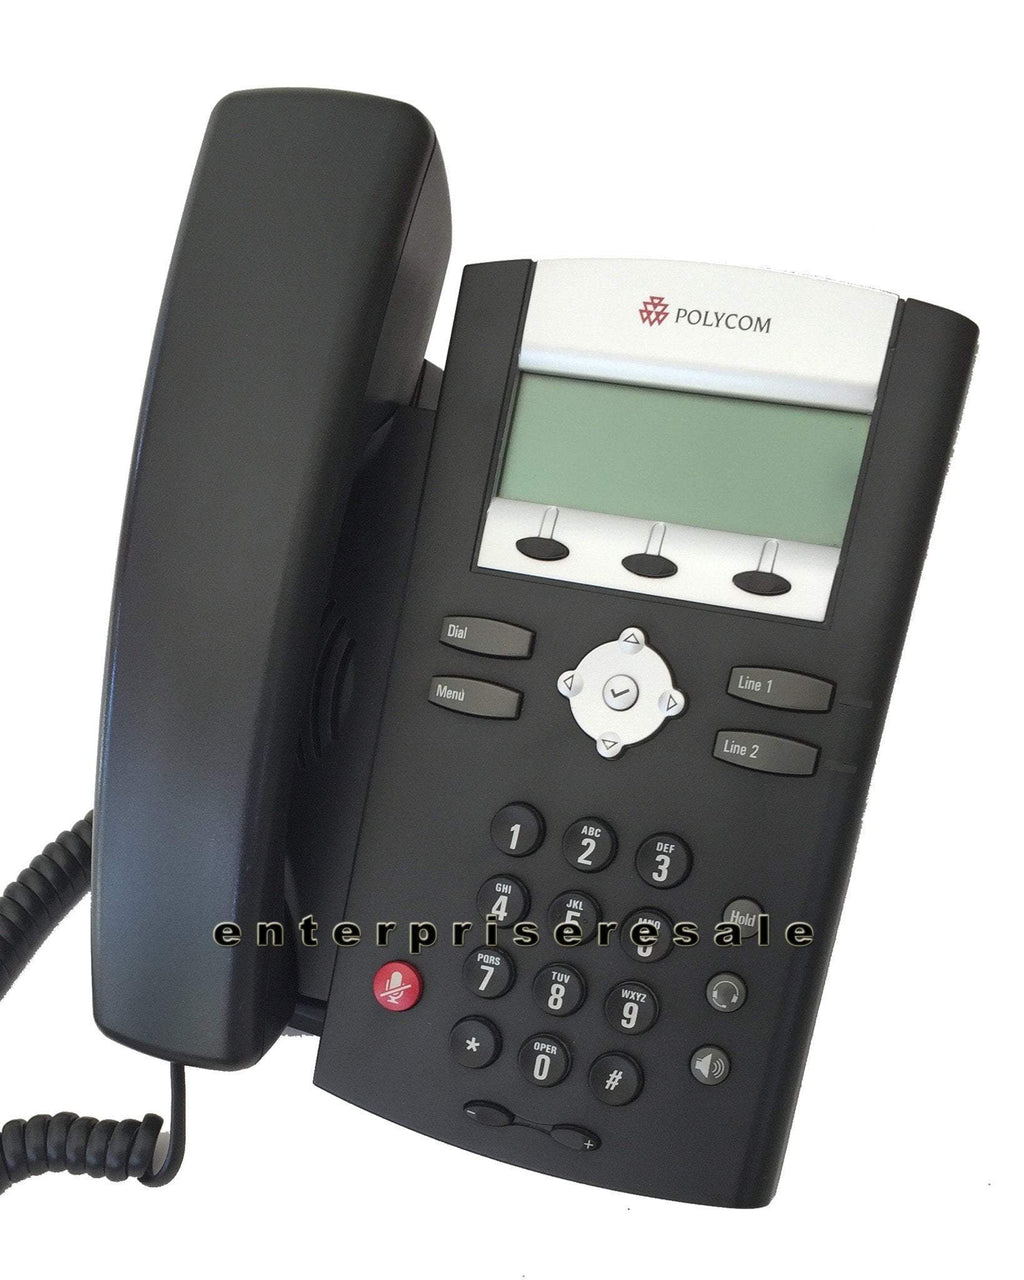 Polycom IP Phone Polycom SoundPoint IP 330 Phone POE 2201-12330-025 IP330 Reduced Price